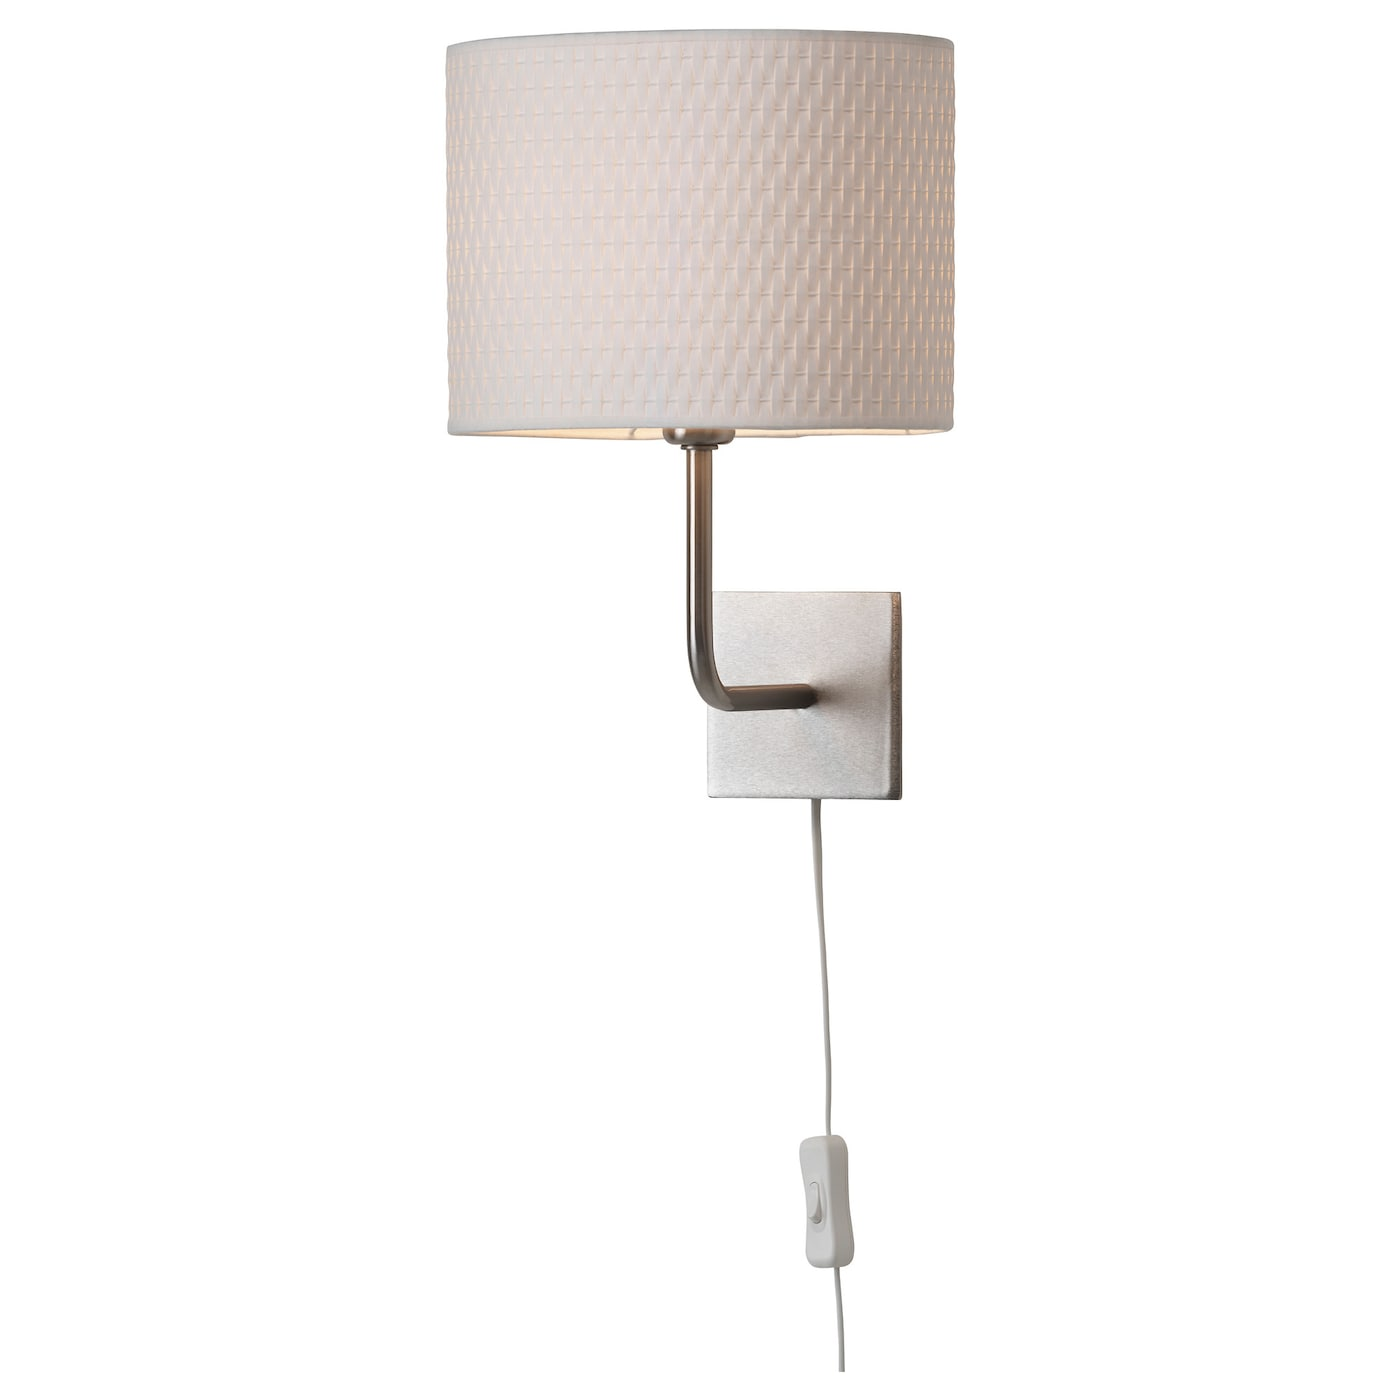 ALaNG Wall lamp Nickel-plated/white - IKEA